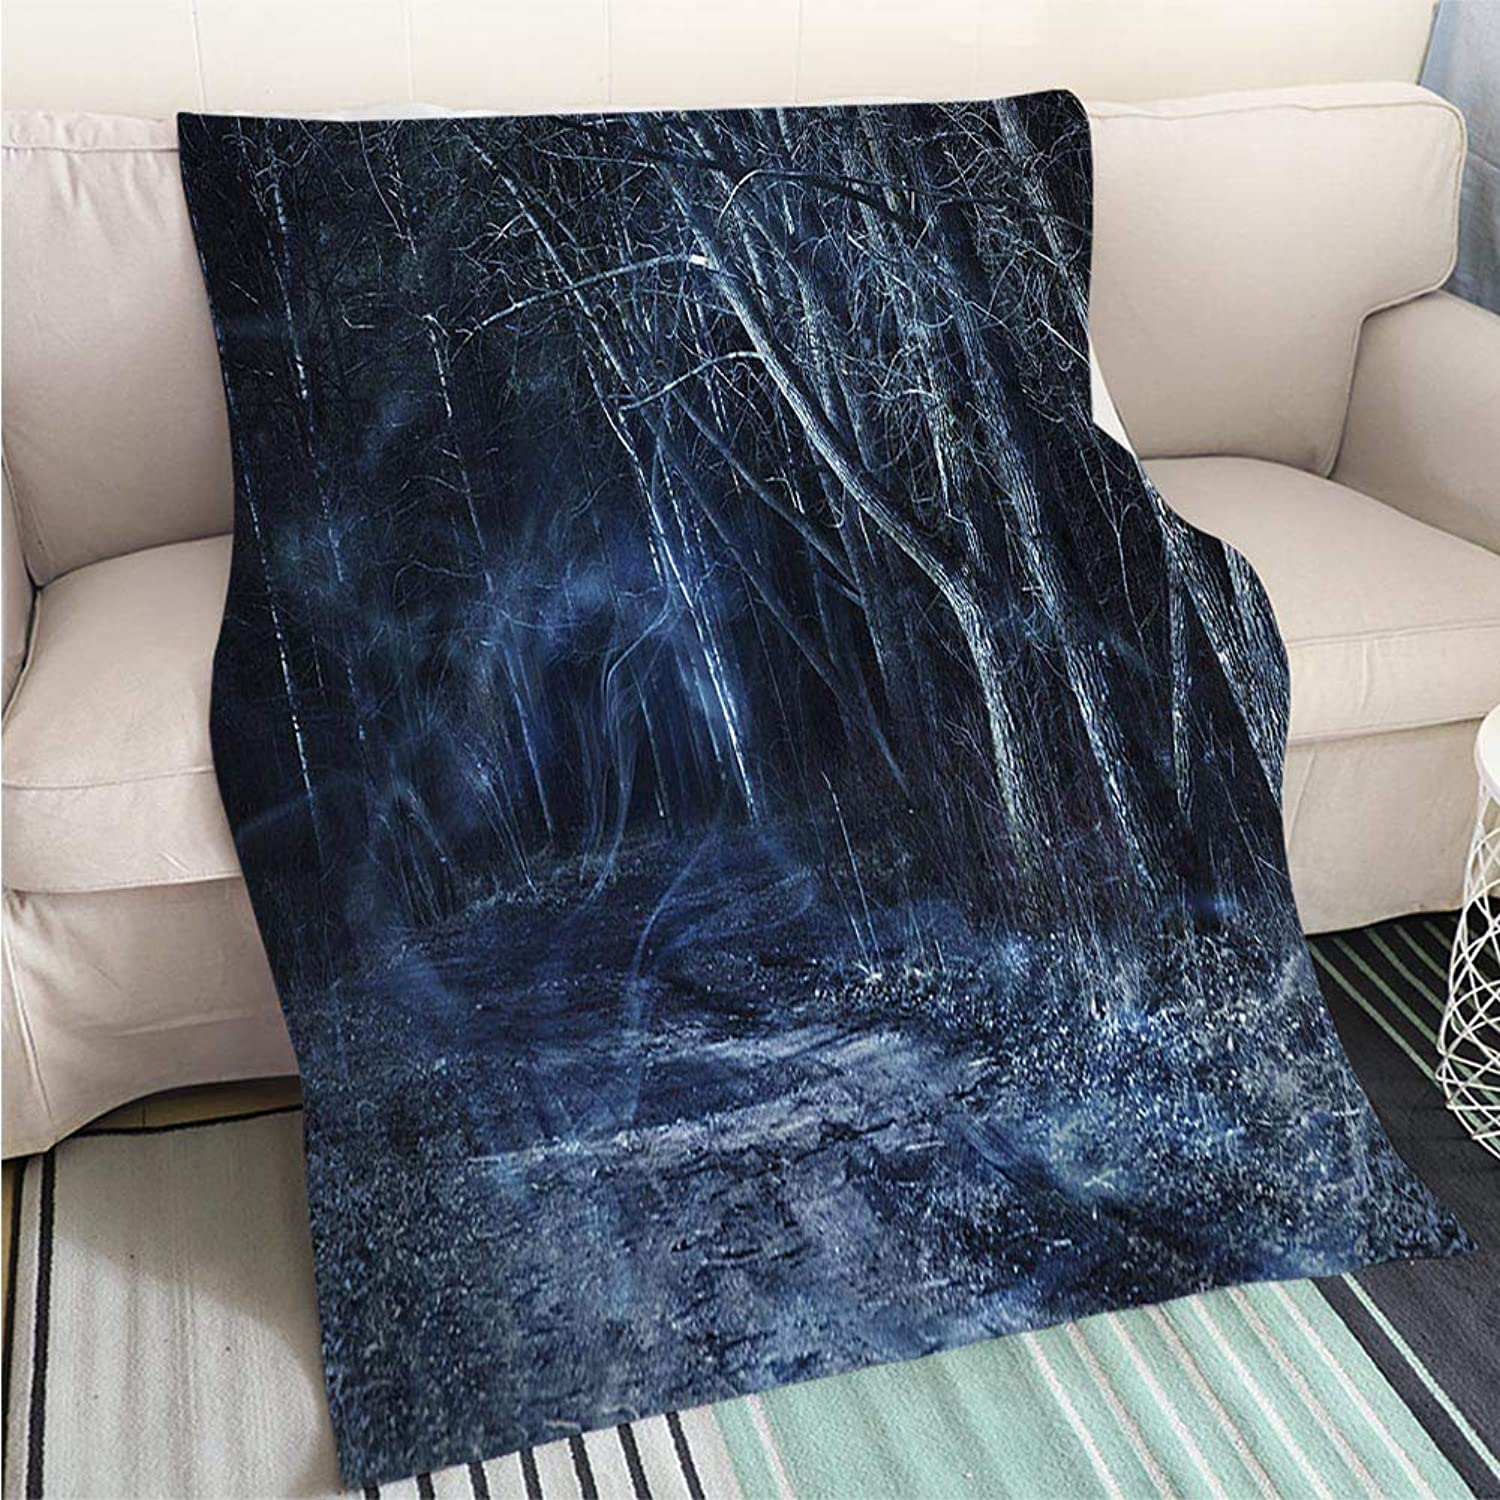 BEICICI Comforter Multicolor Bed or Couch Misty Forest by Moonlight Fashion Ultra Cozy Flannel Blanket